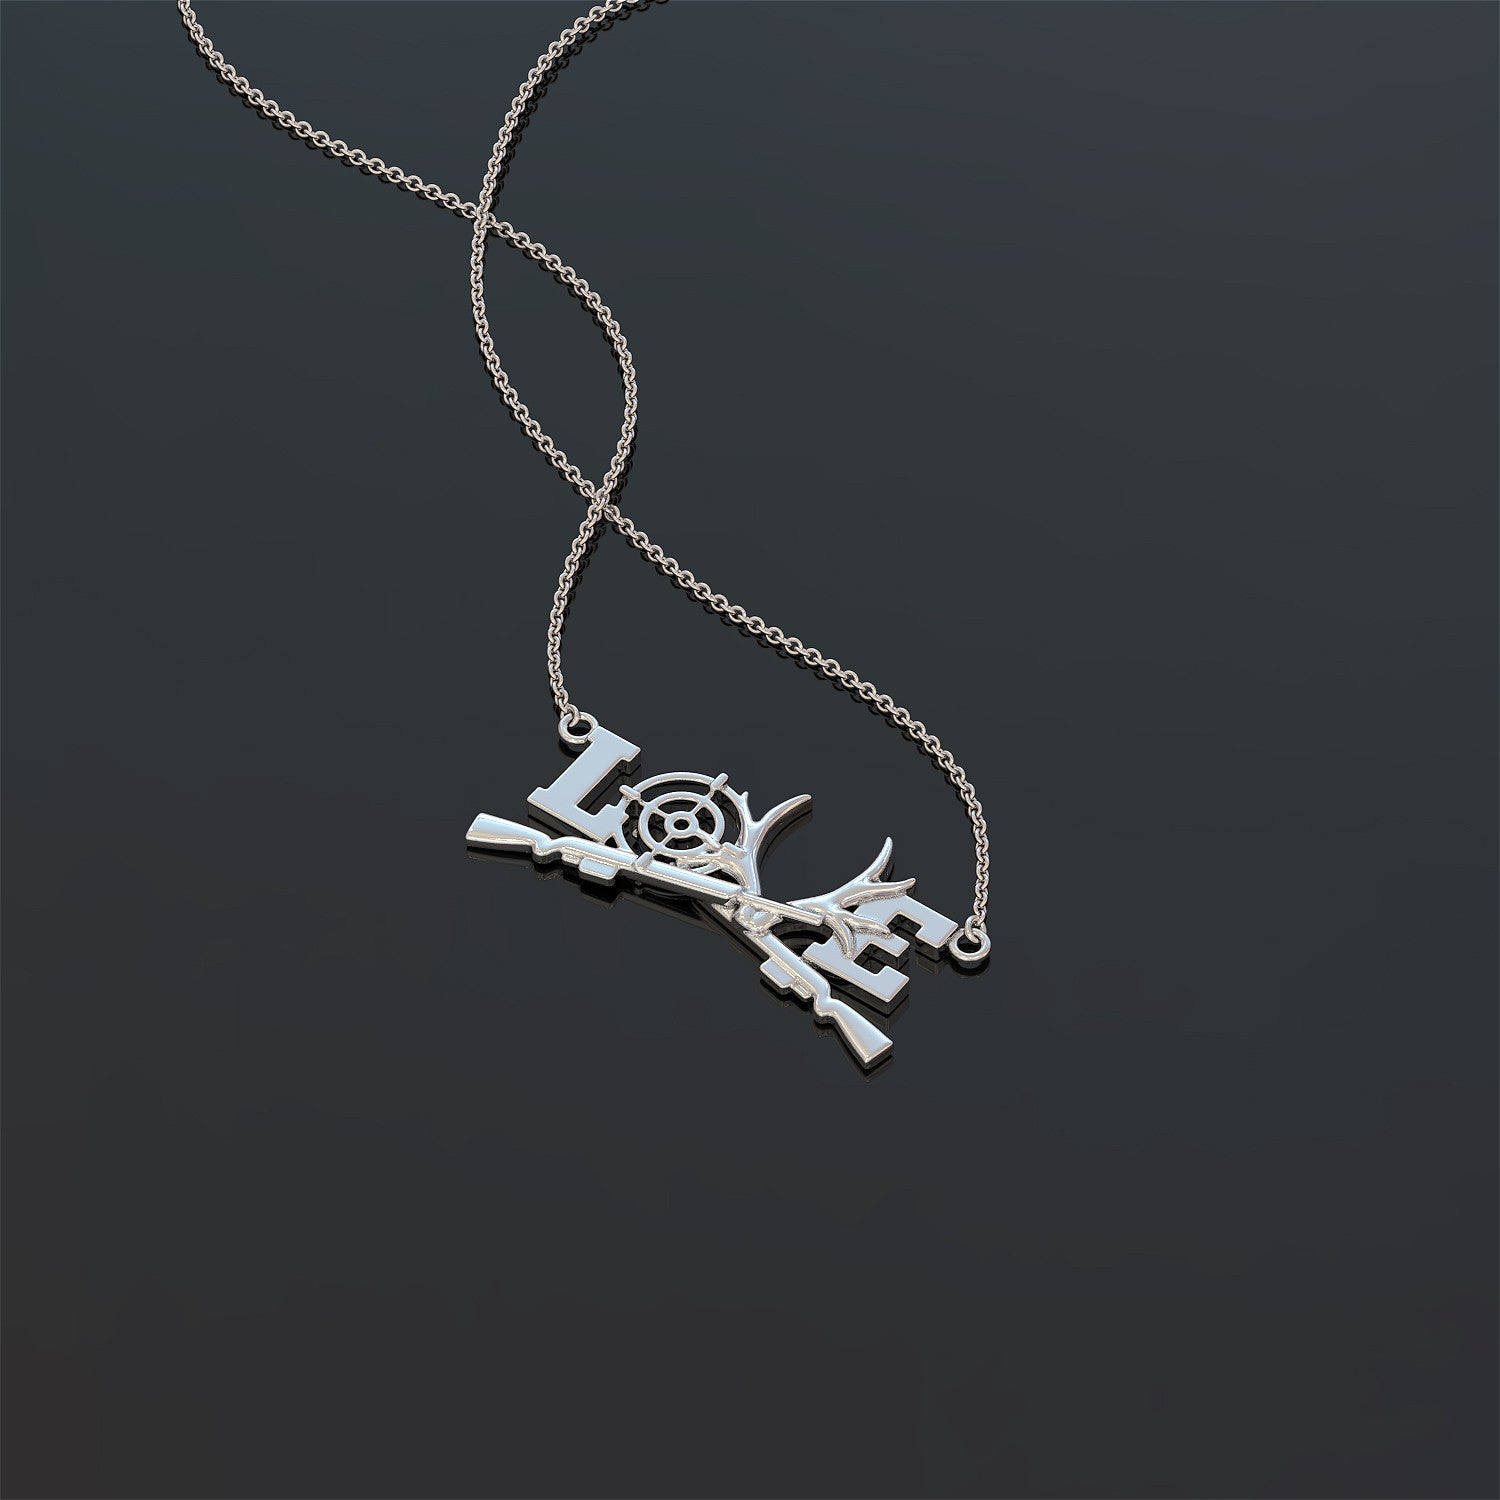 Love Hunting Necklace